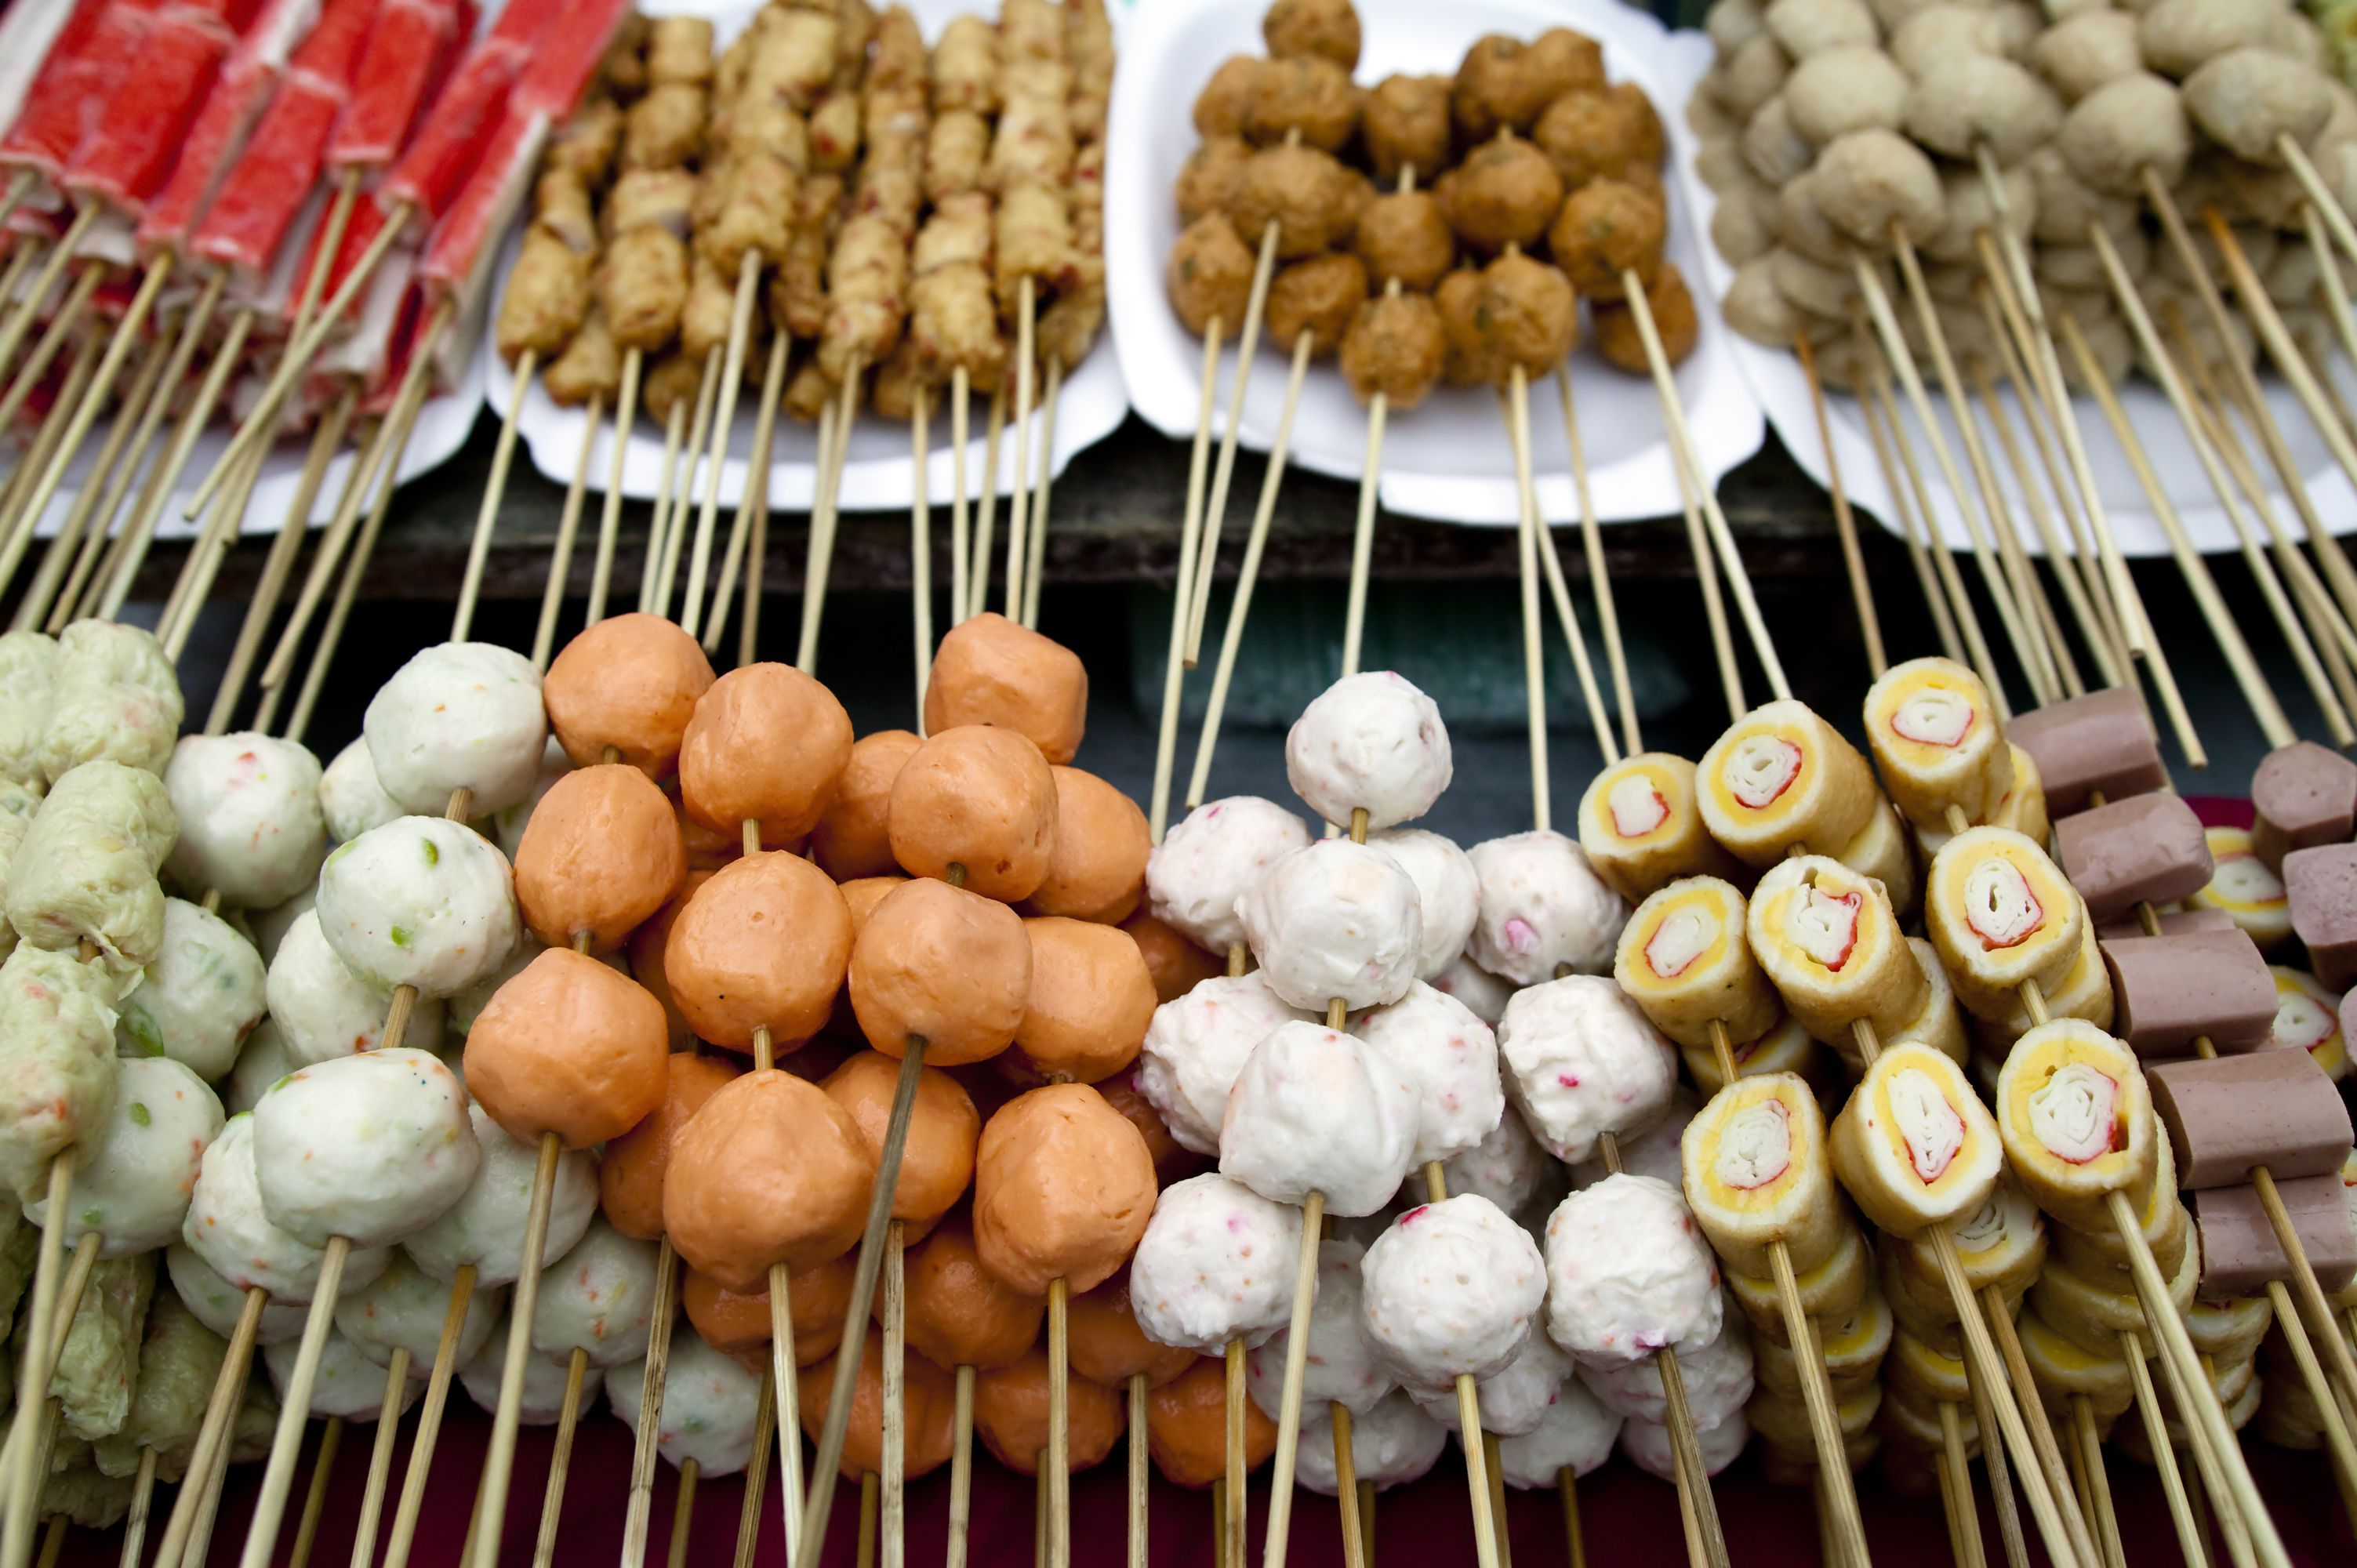 traditional malaysian street food called lok lok or chinese fondue. the meat on the skewers is placed in the boiling water to cook and eaten on the spot